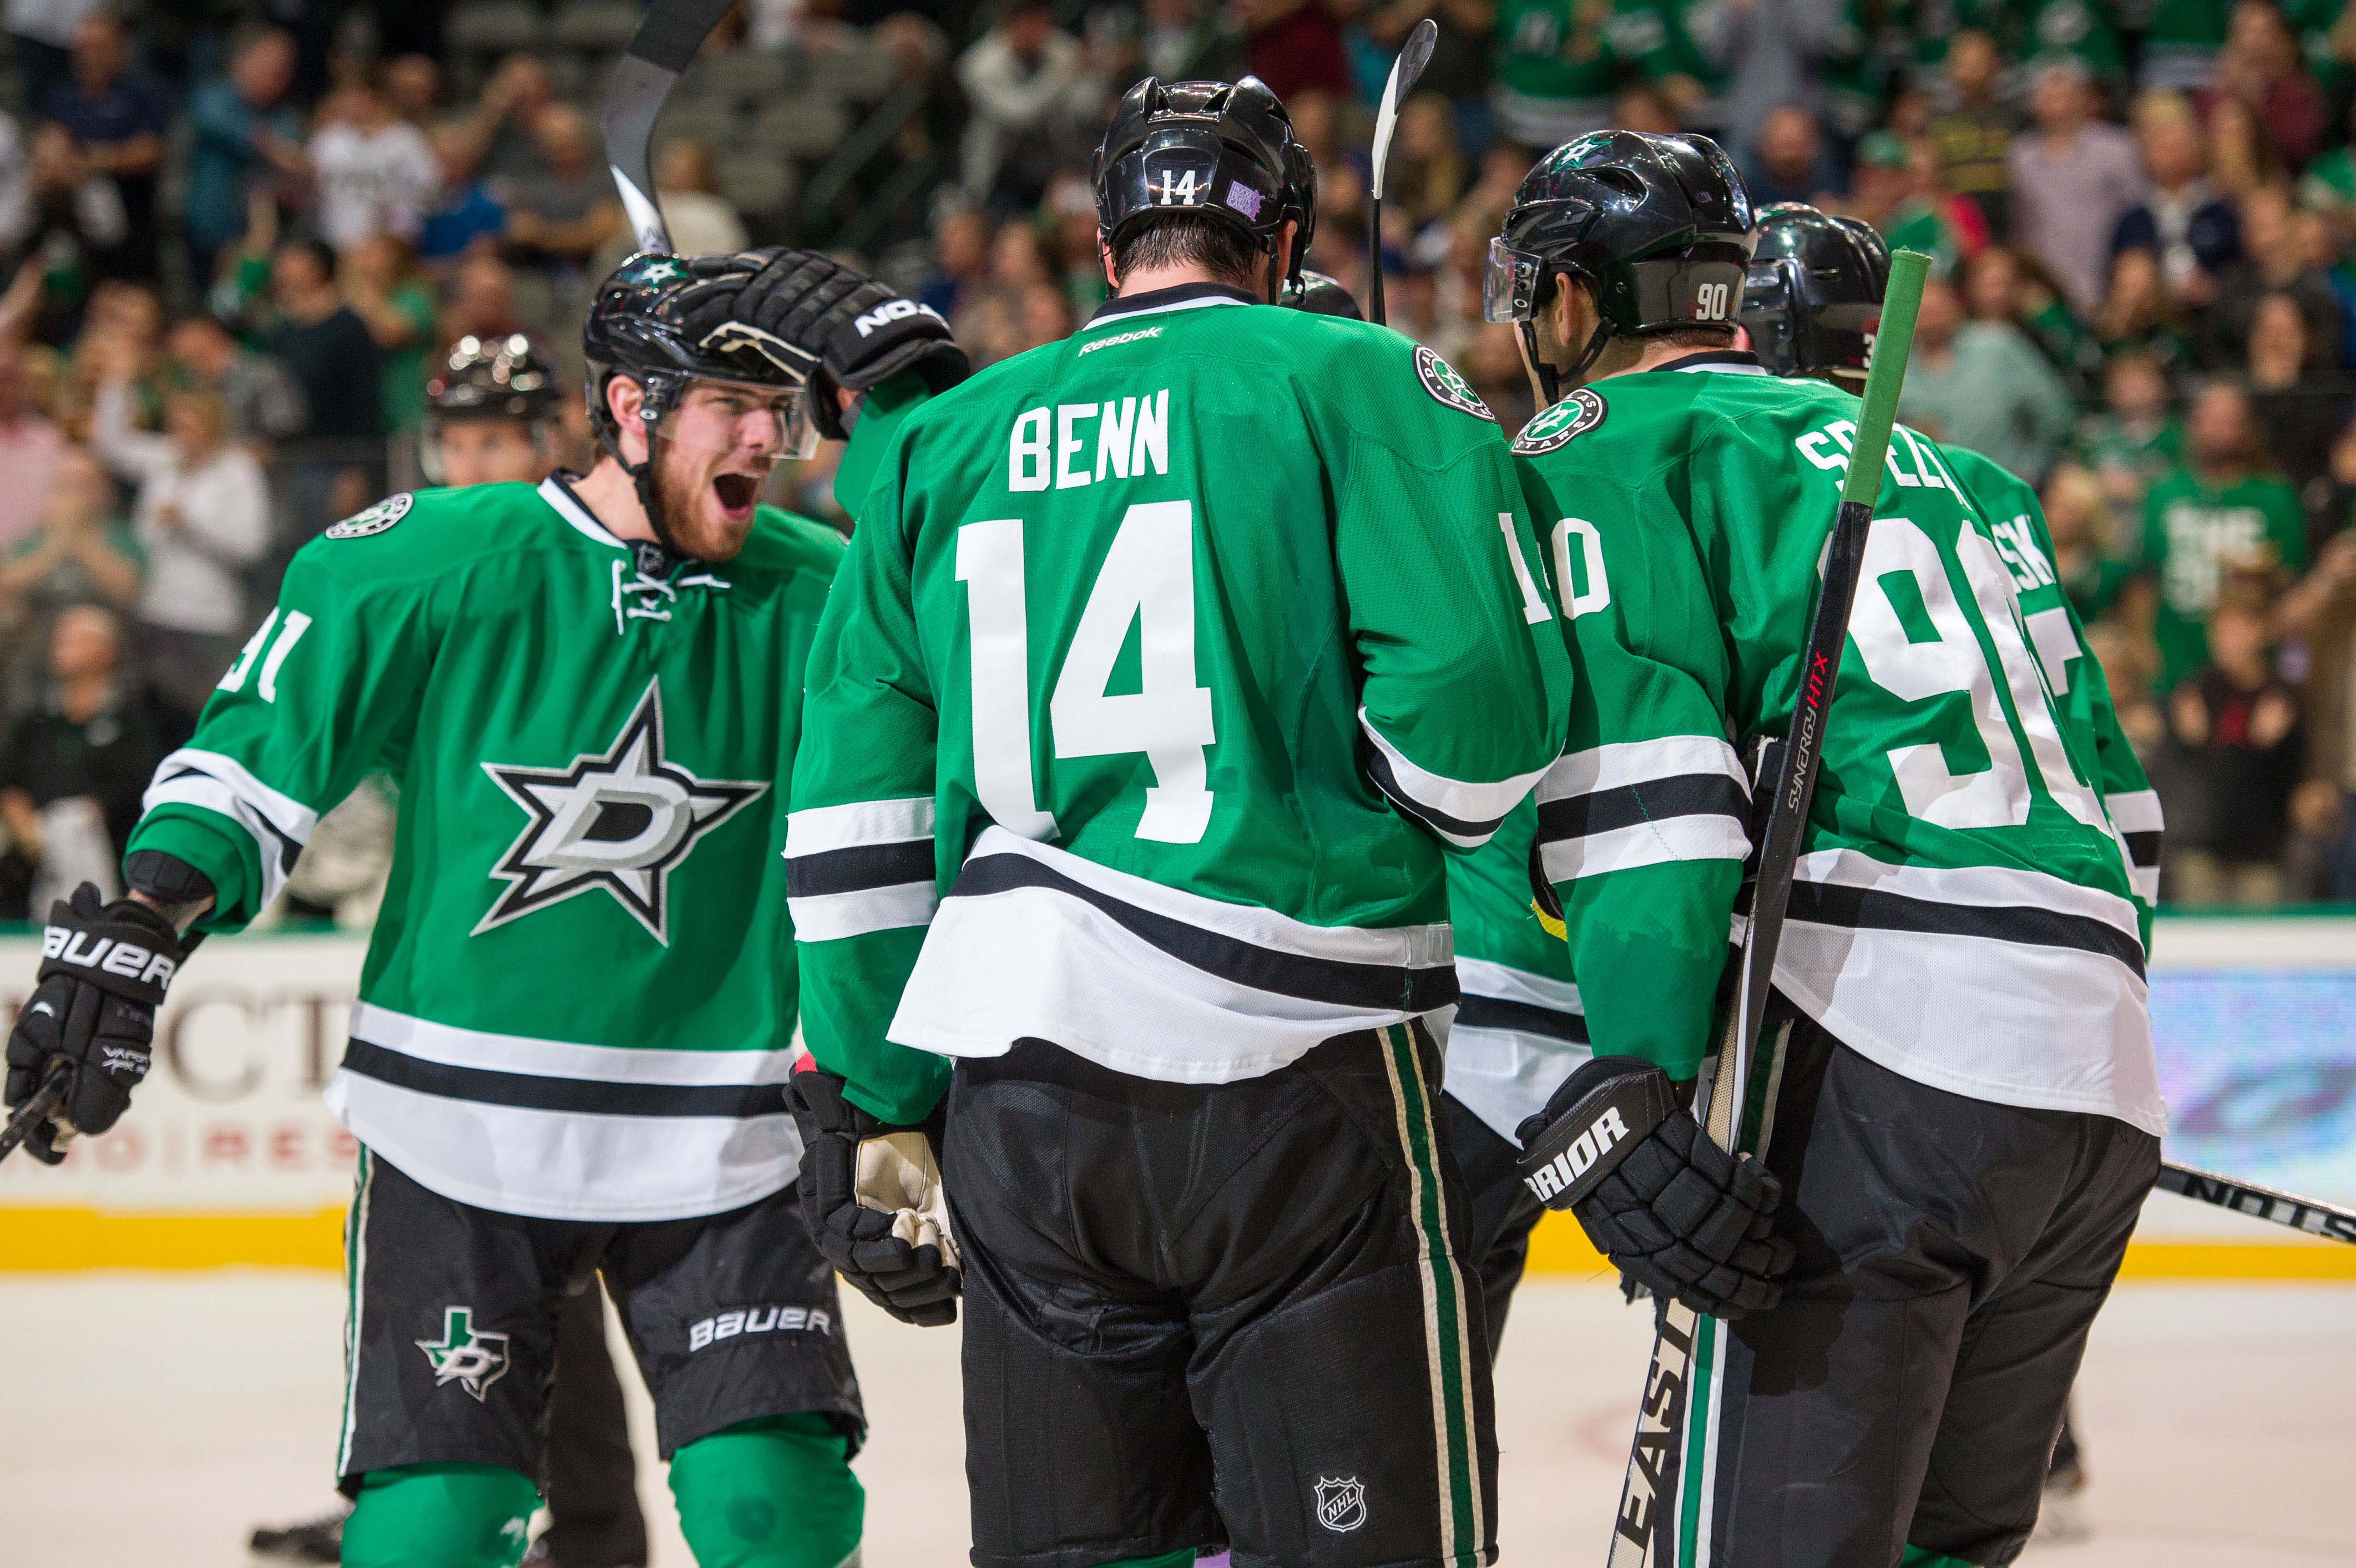 Stars fans can look forward to four more years with the Three Amigos